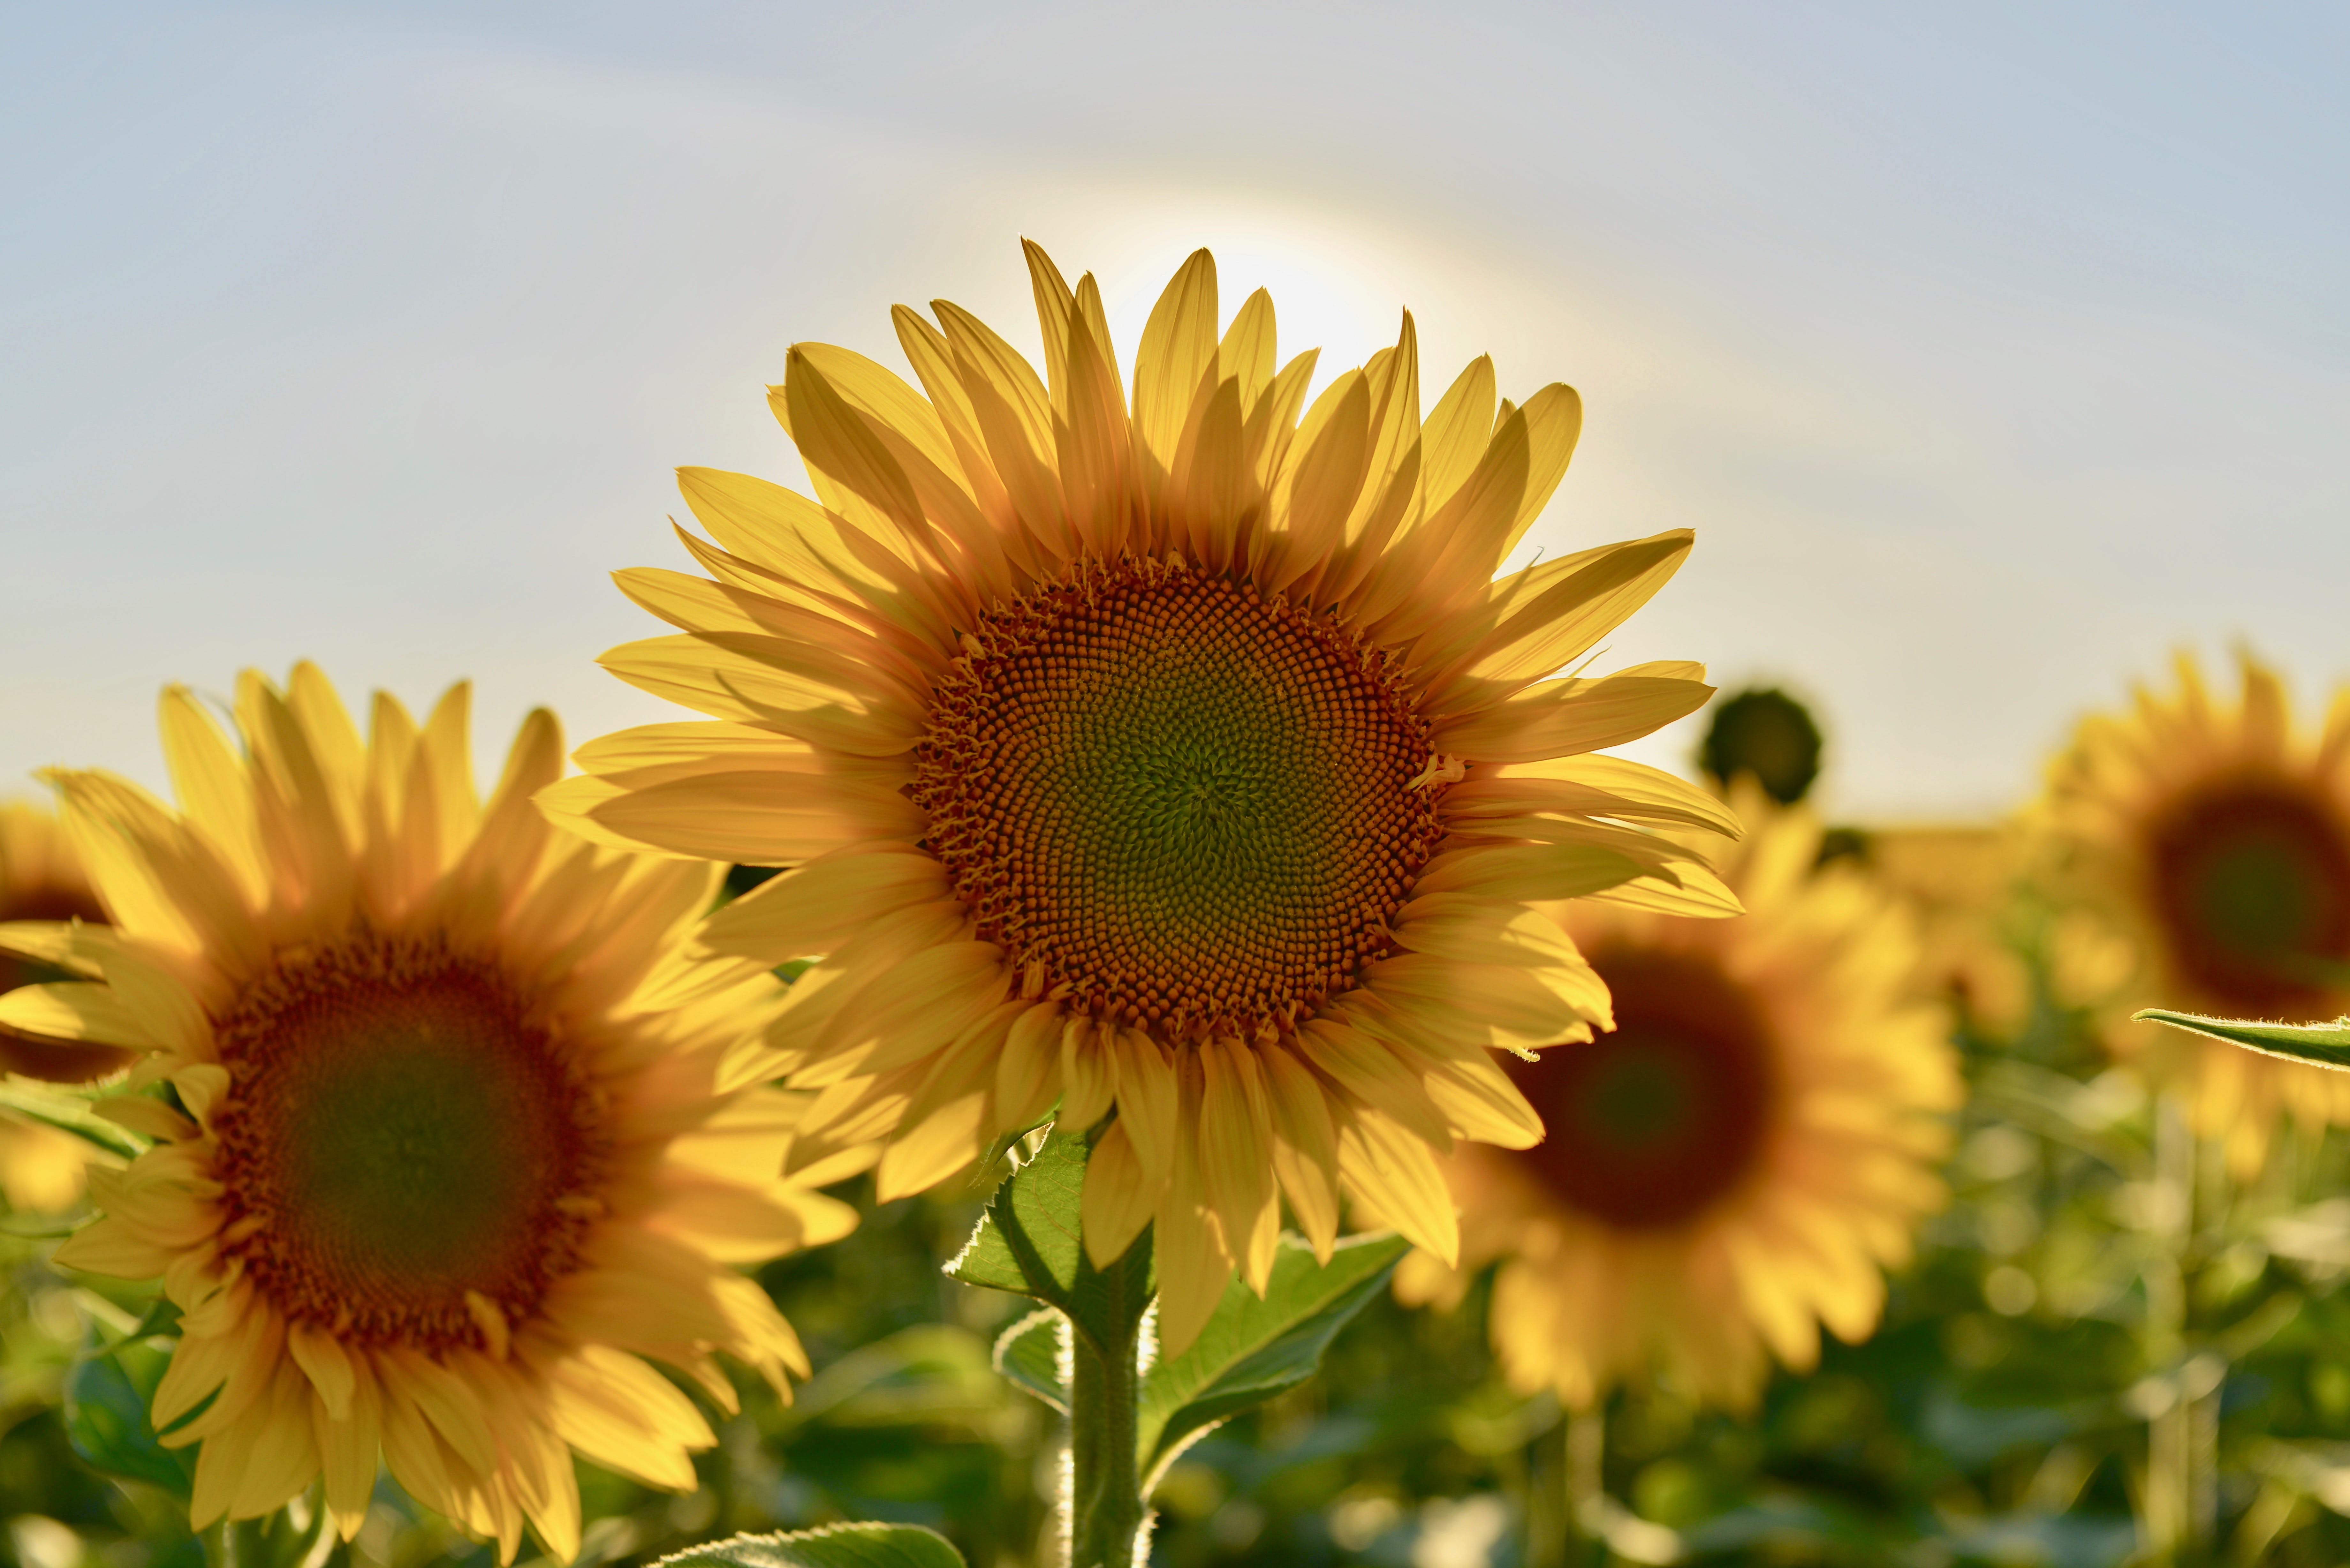 Selective Focus Photography of Sunflower